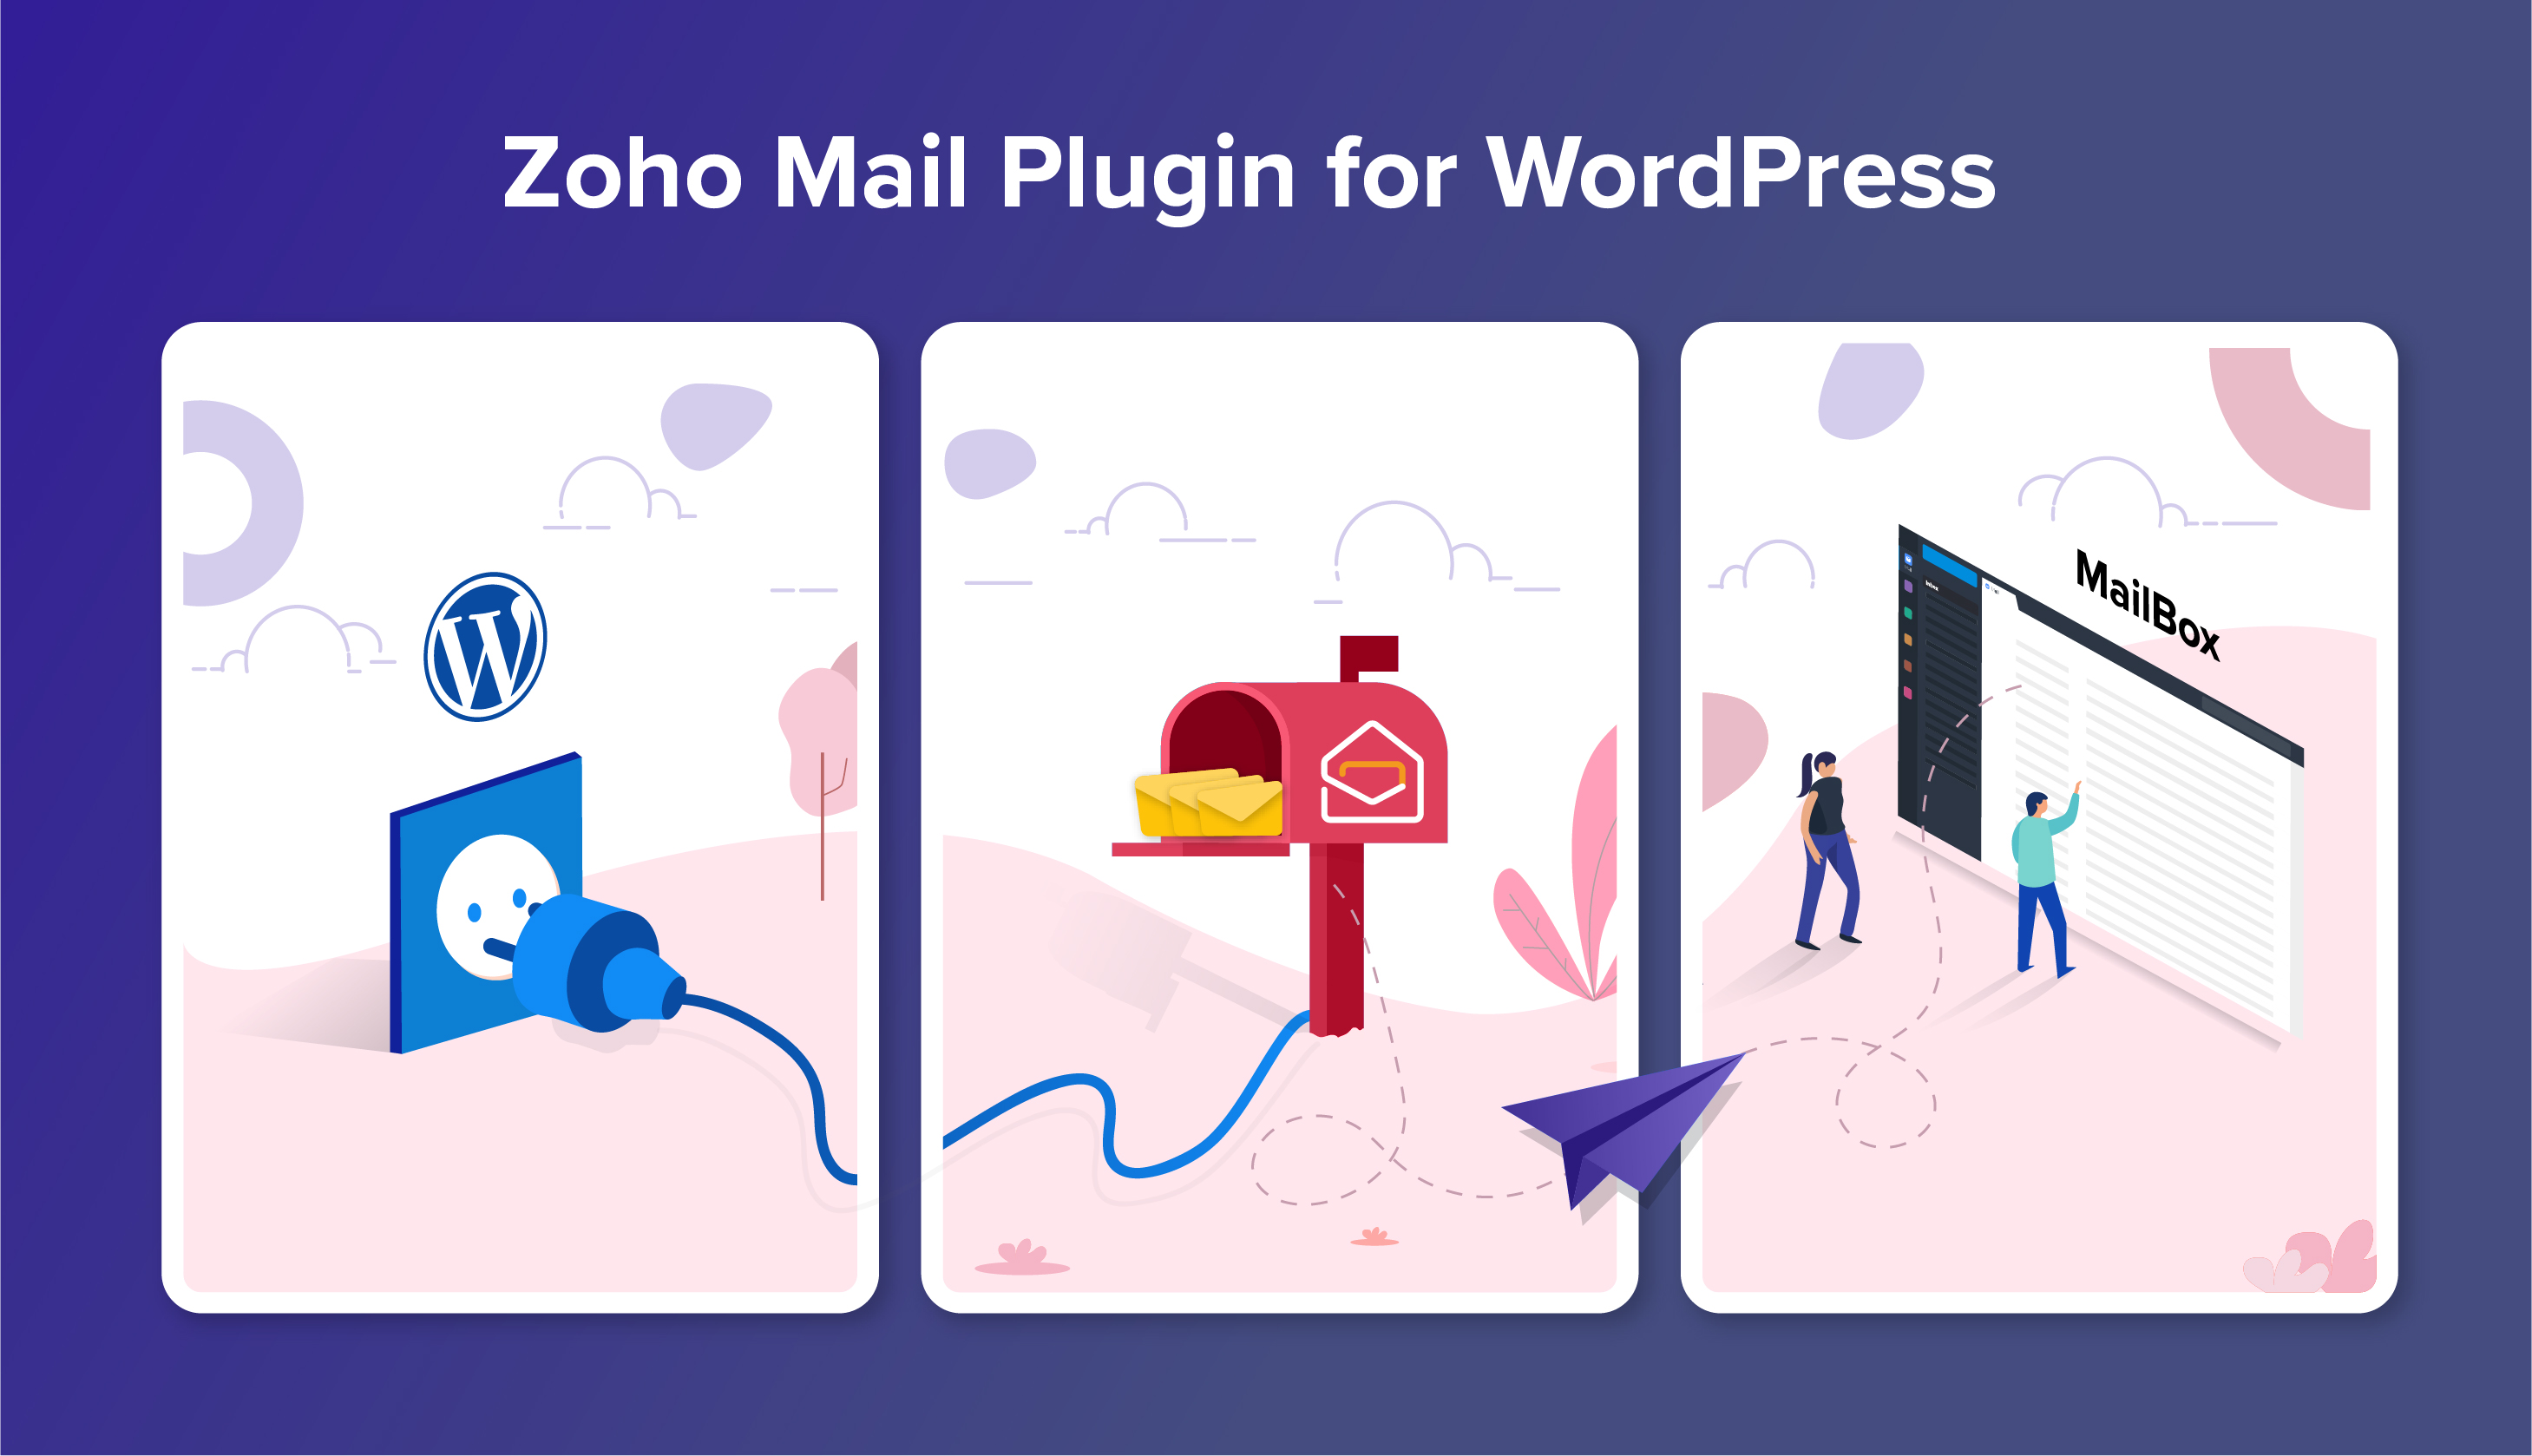 Zoho Mail Plugin for WordPress—sending authentic emails from your website